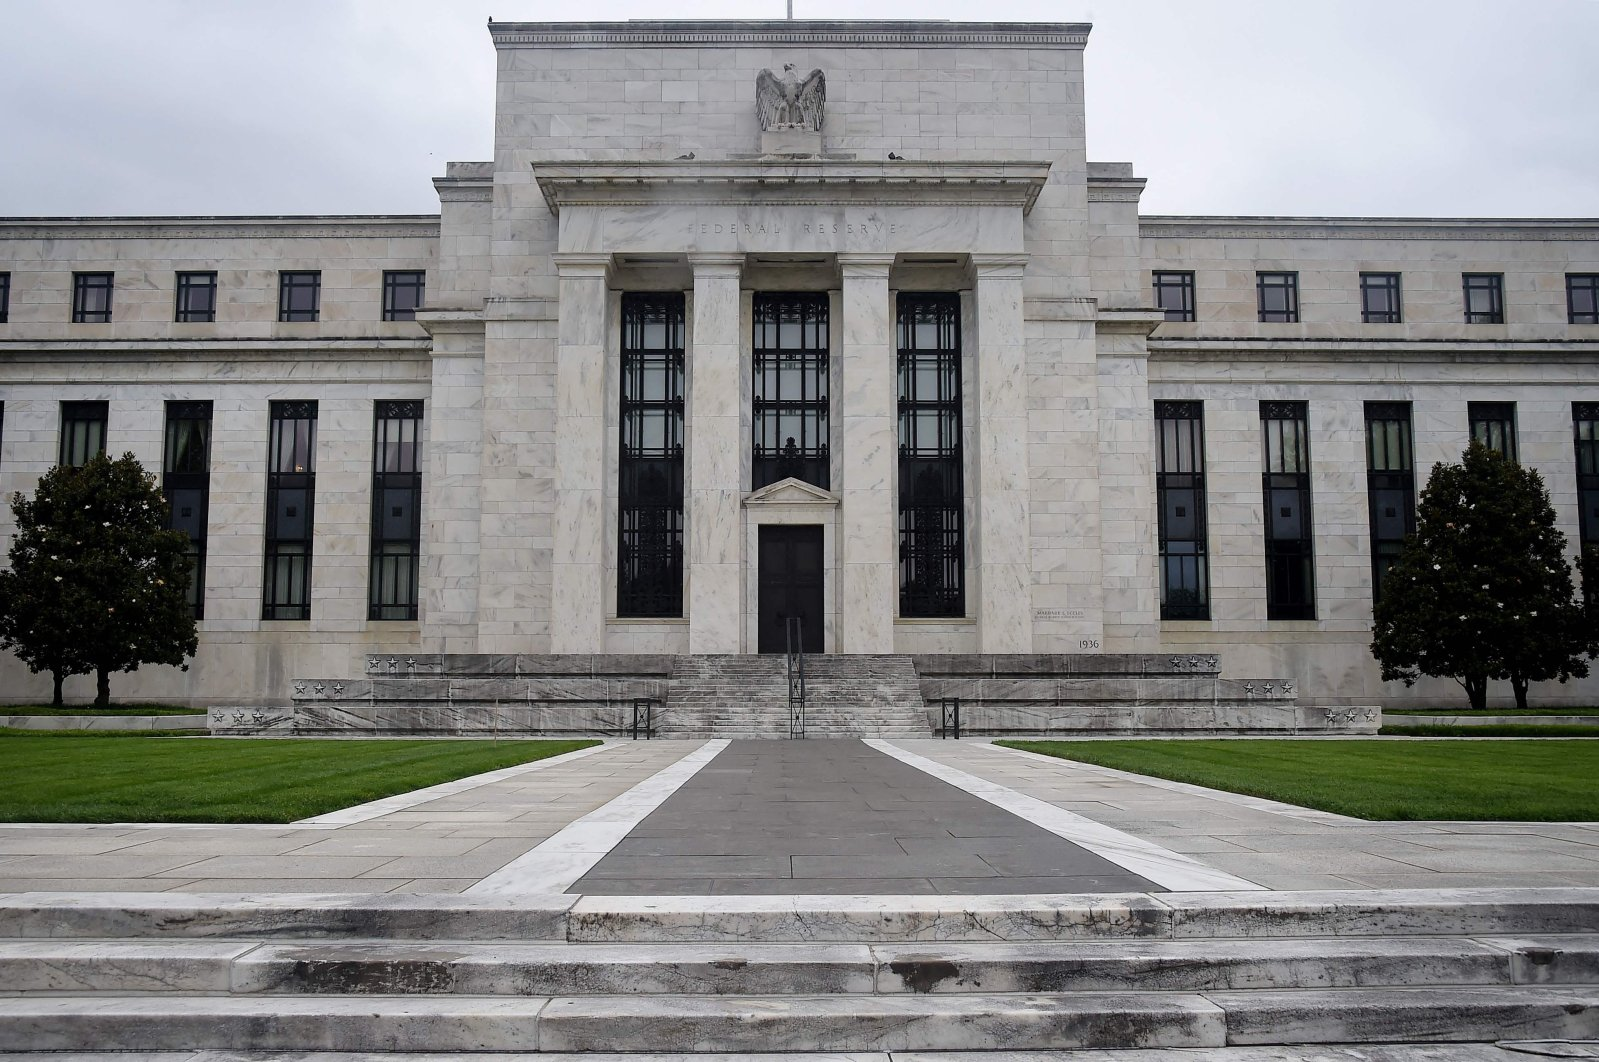 The Federal Reserve building is seen in Washington, D.C., U.S., June 17, 2020. (AFP File Photo)